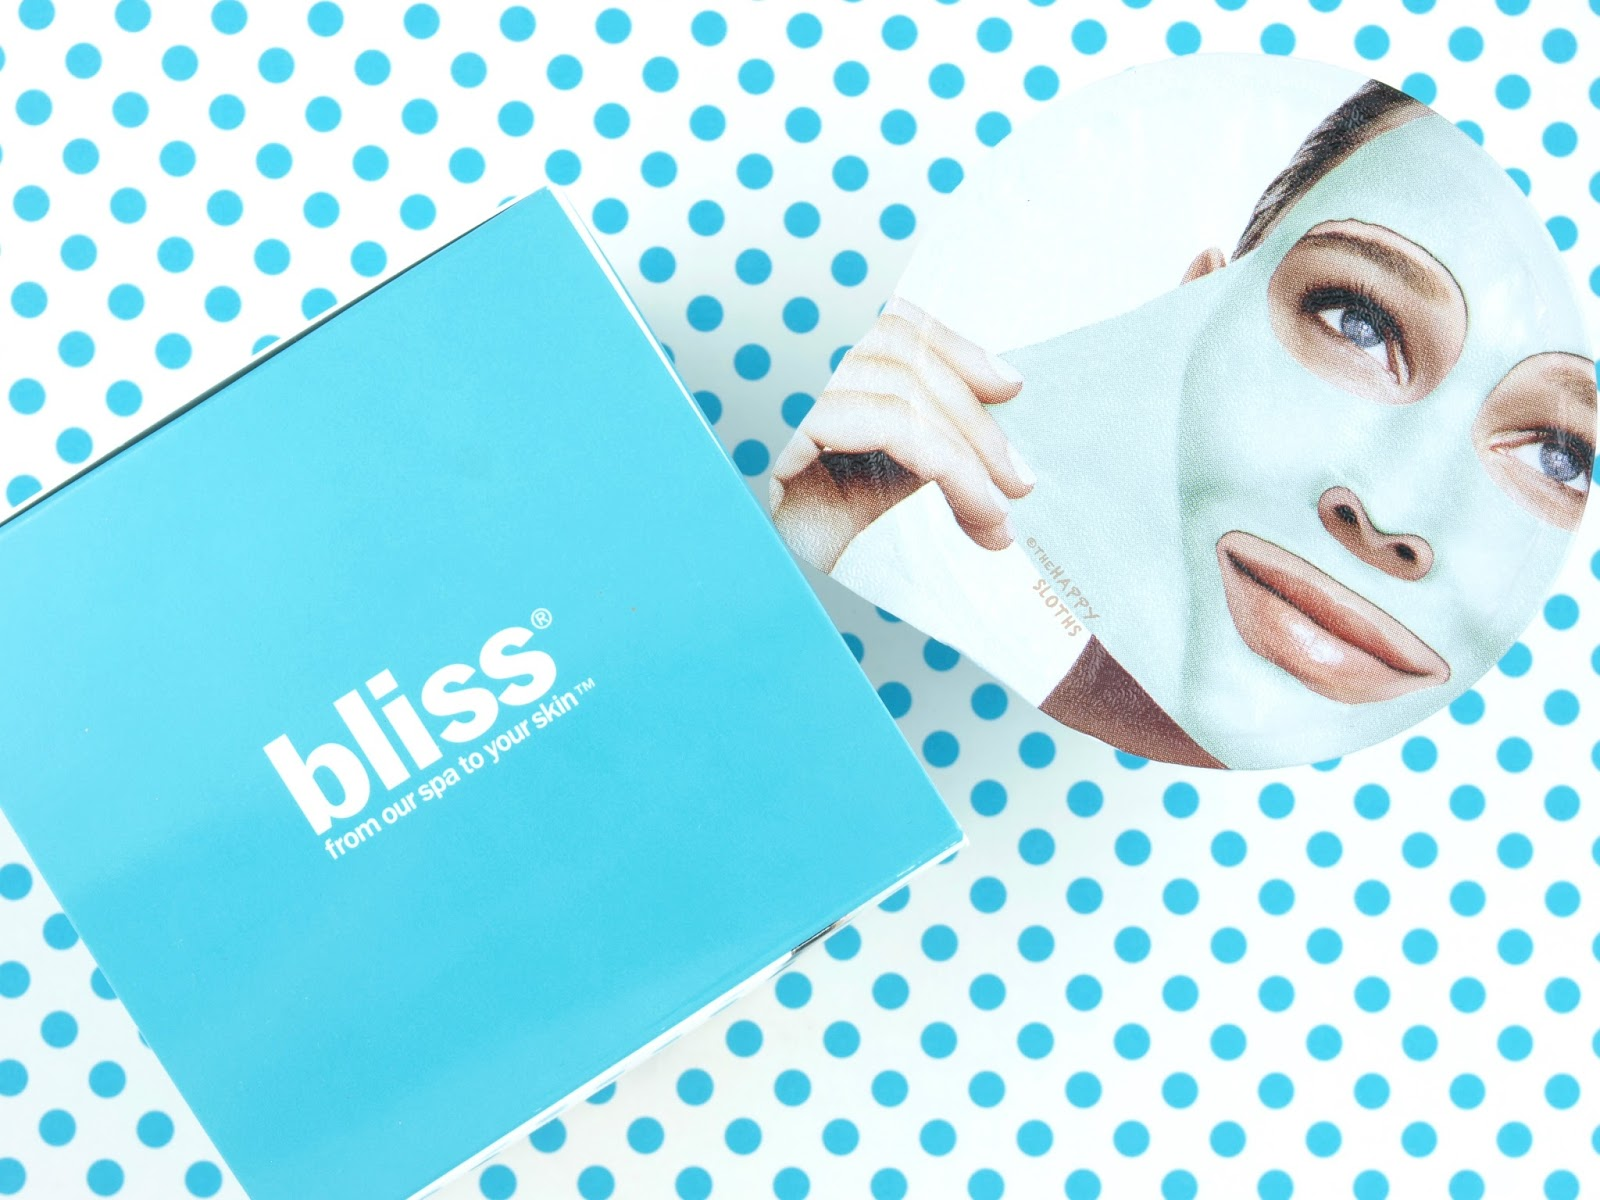 Bliss Mask-a-'Peel' Complexion Clearing Rubberizing Mask: Review